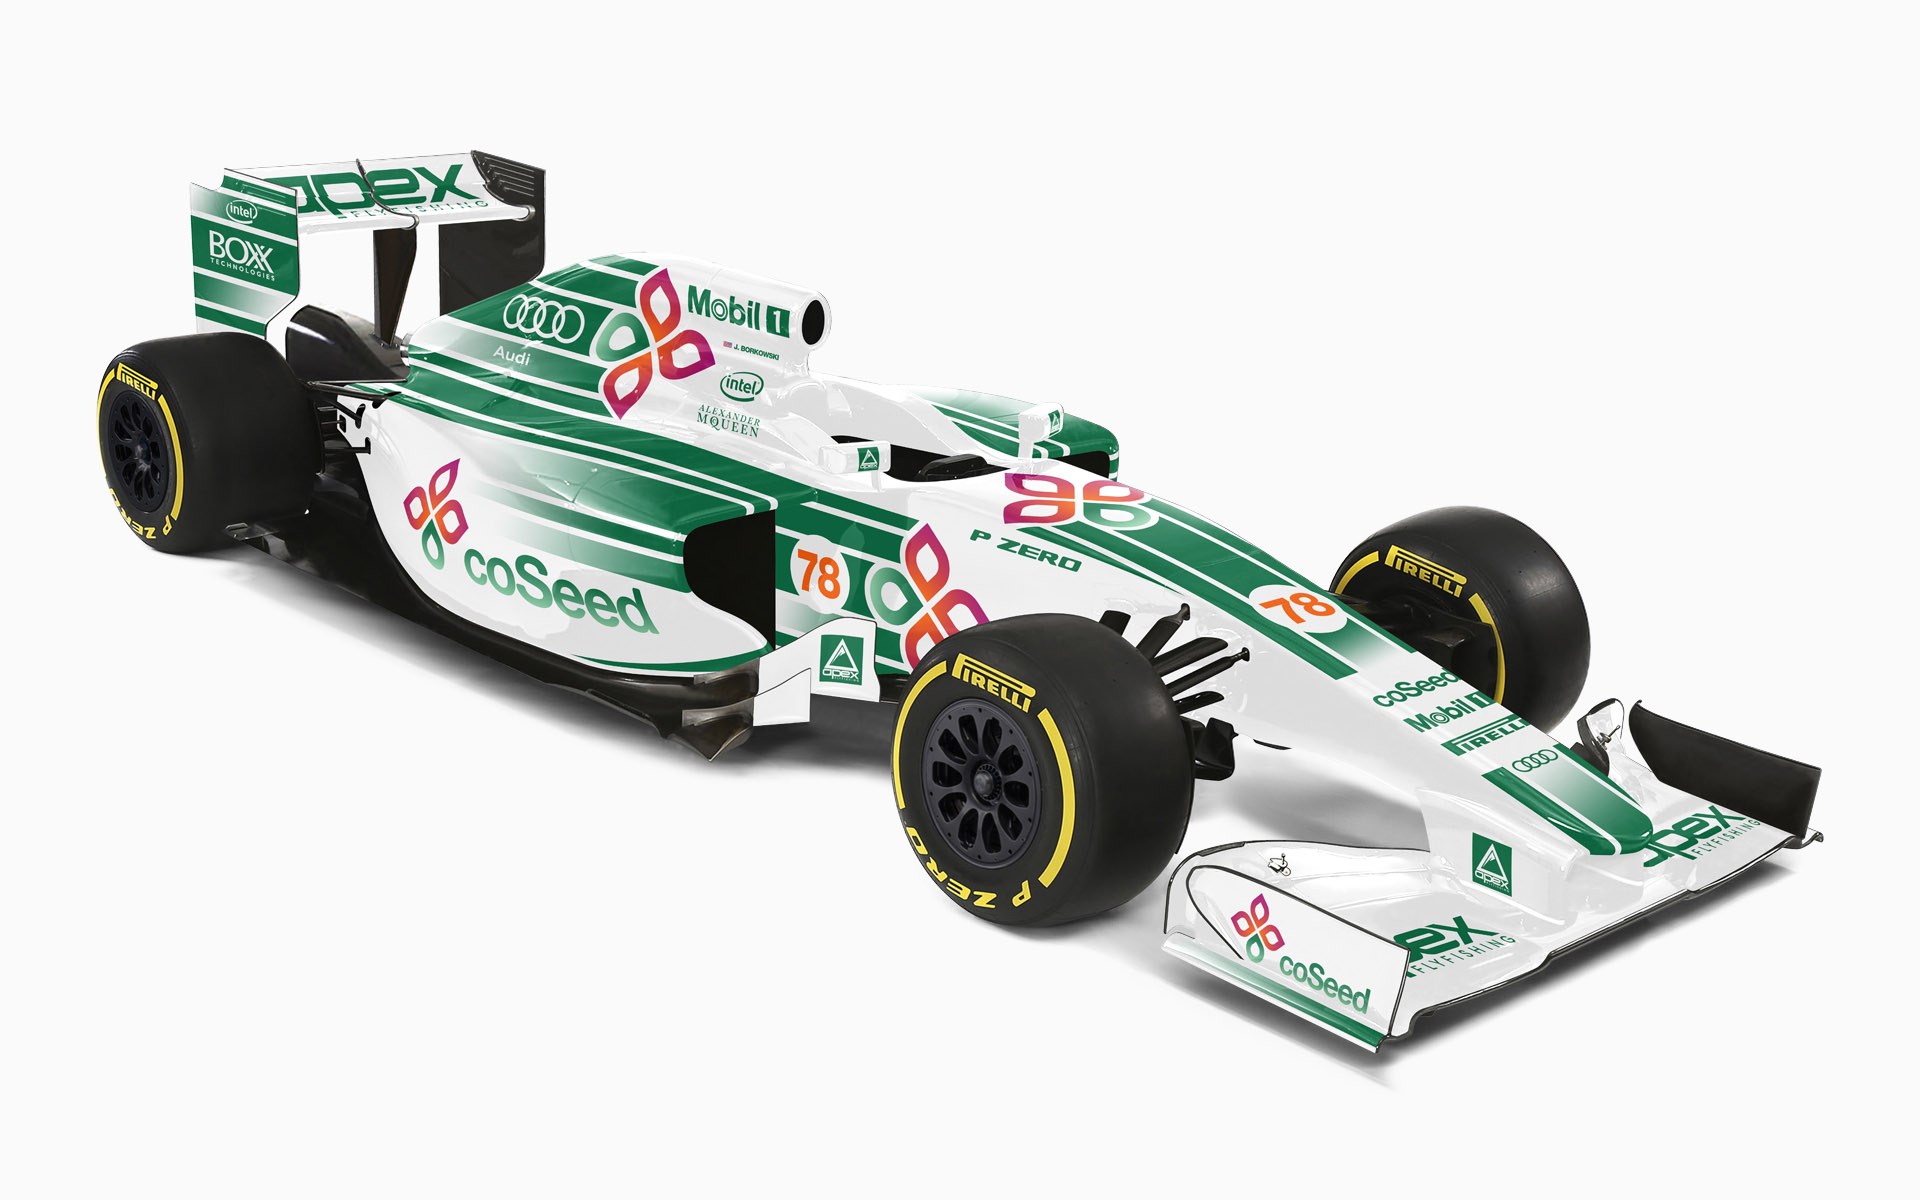 CoSeed F1 Livery Visualization